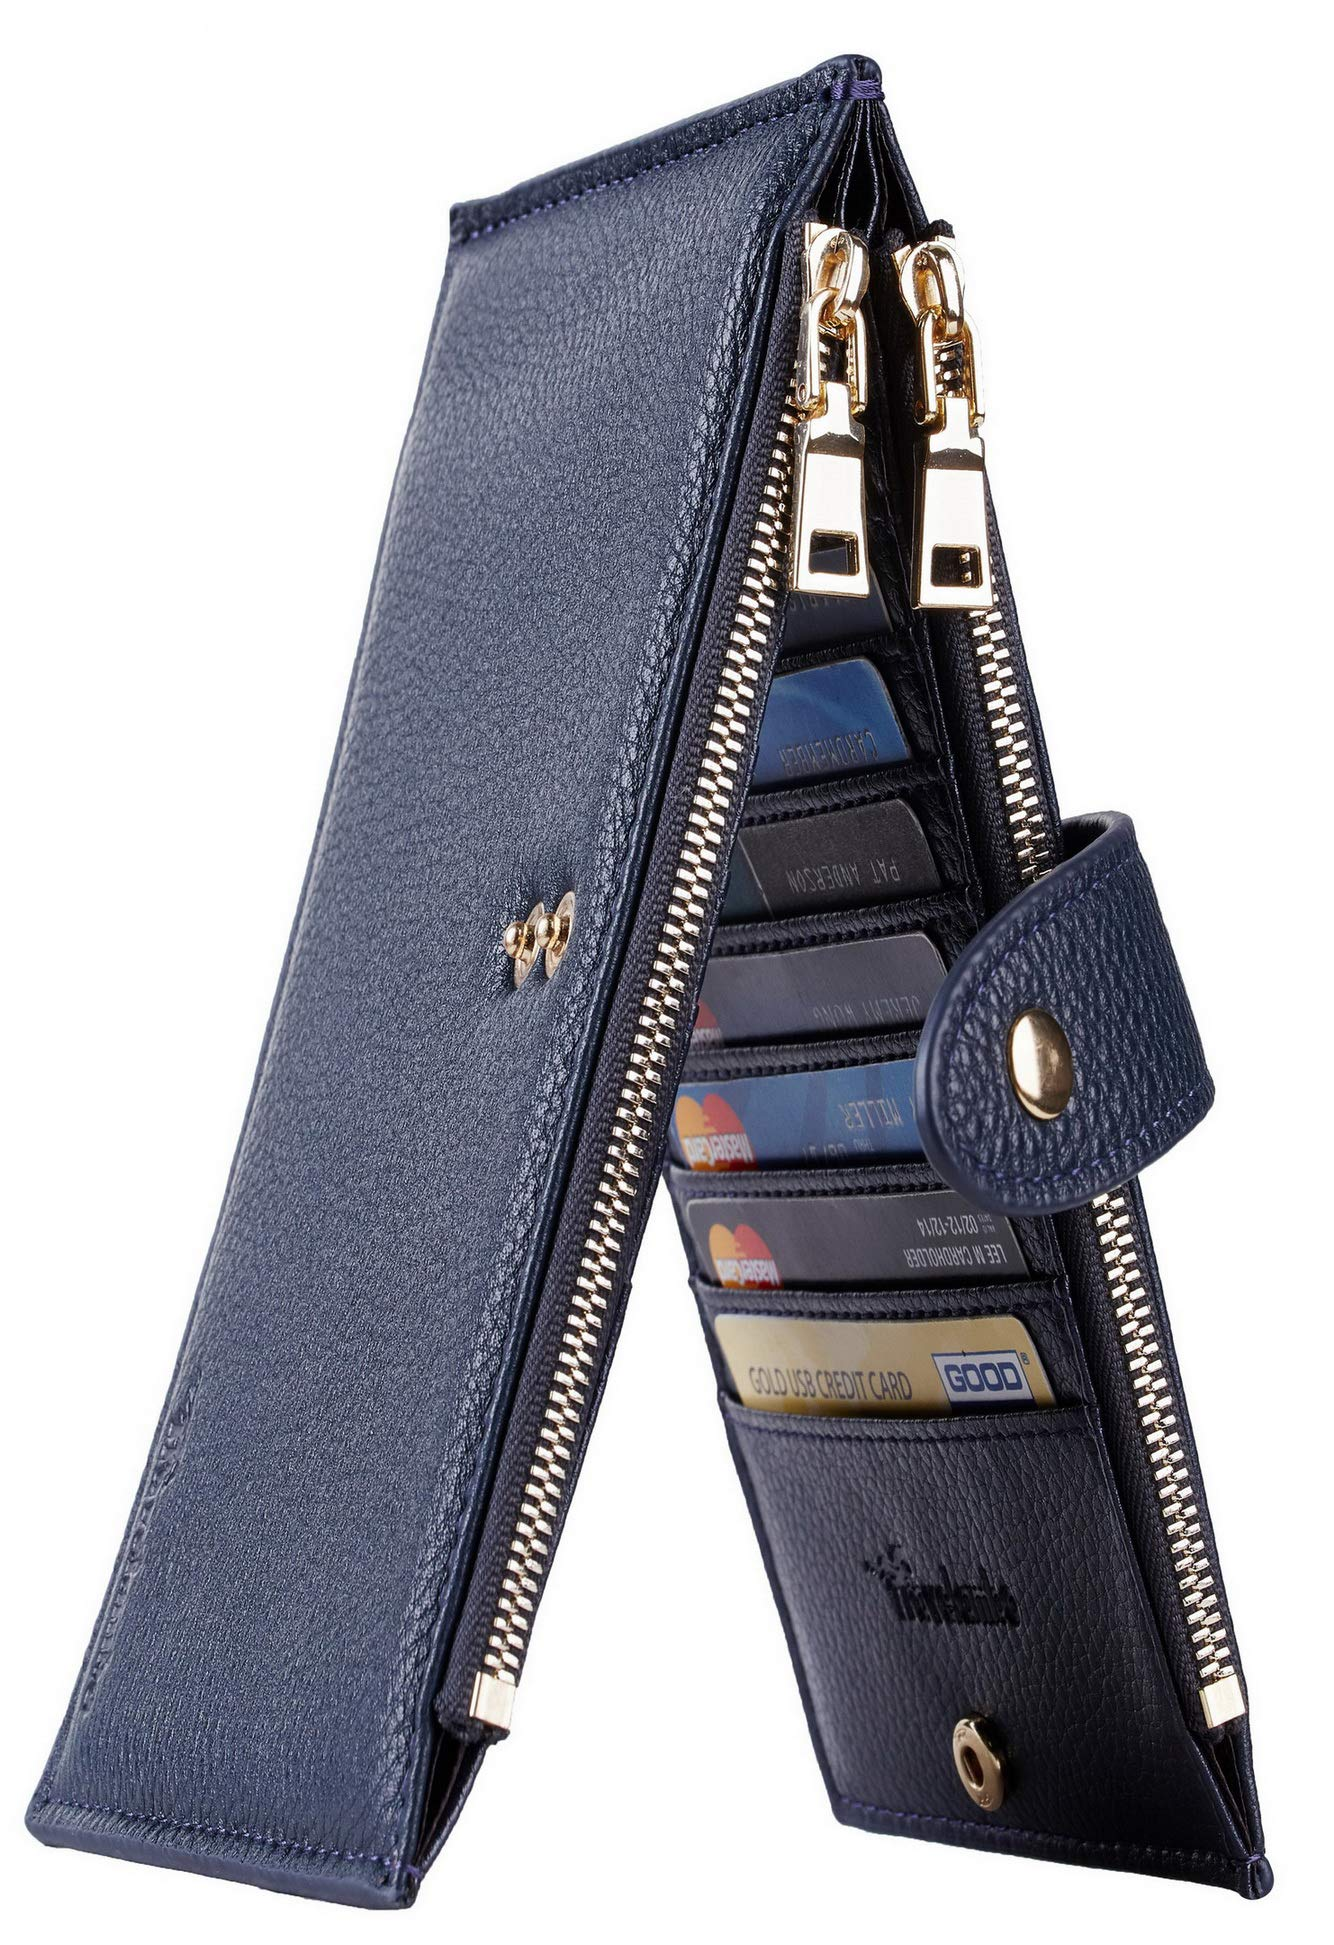 Womens Walllet RFID Blocking Bifold Multi Card Case Wallet with Zipper Pocket (Chelsea Blue Navy) by Excliria